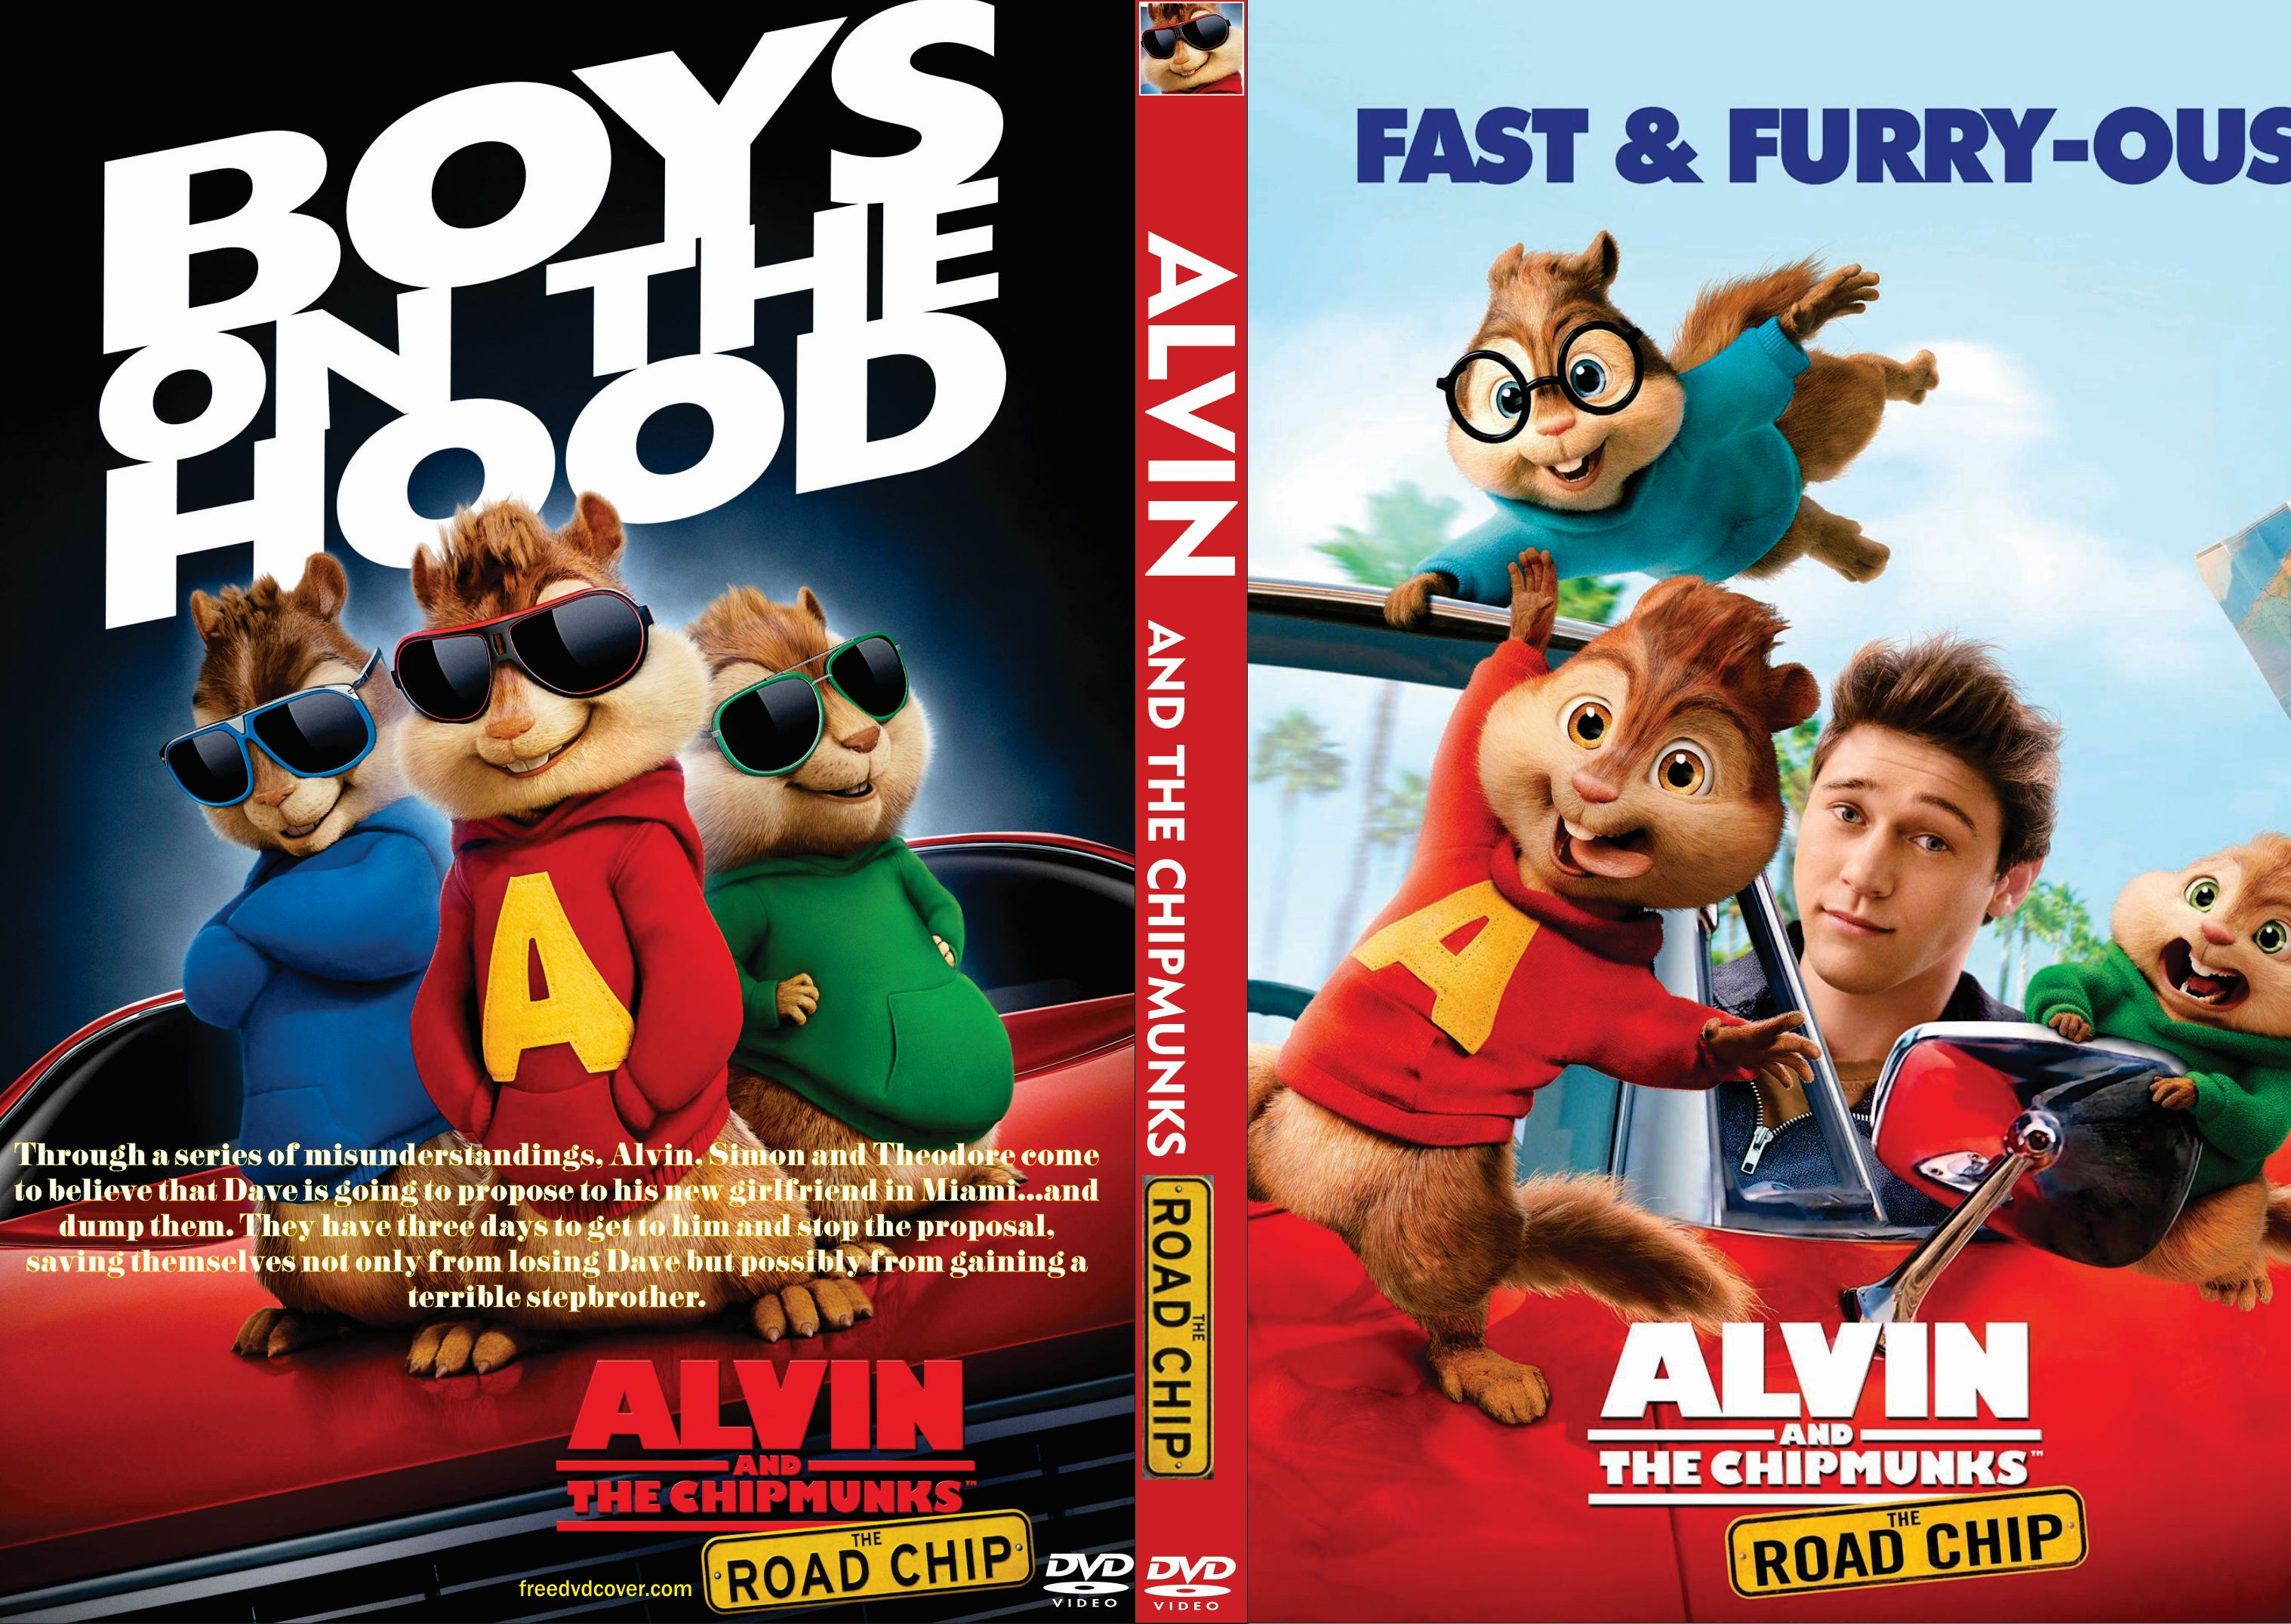 I Took My Son Daughter To Watch This Movie They Enjoyed It 8 Alvin And The Chipmunks Alvin And Chipmunks Movie Chipmunks